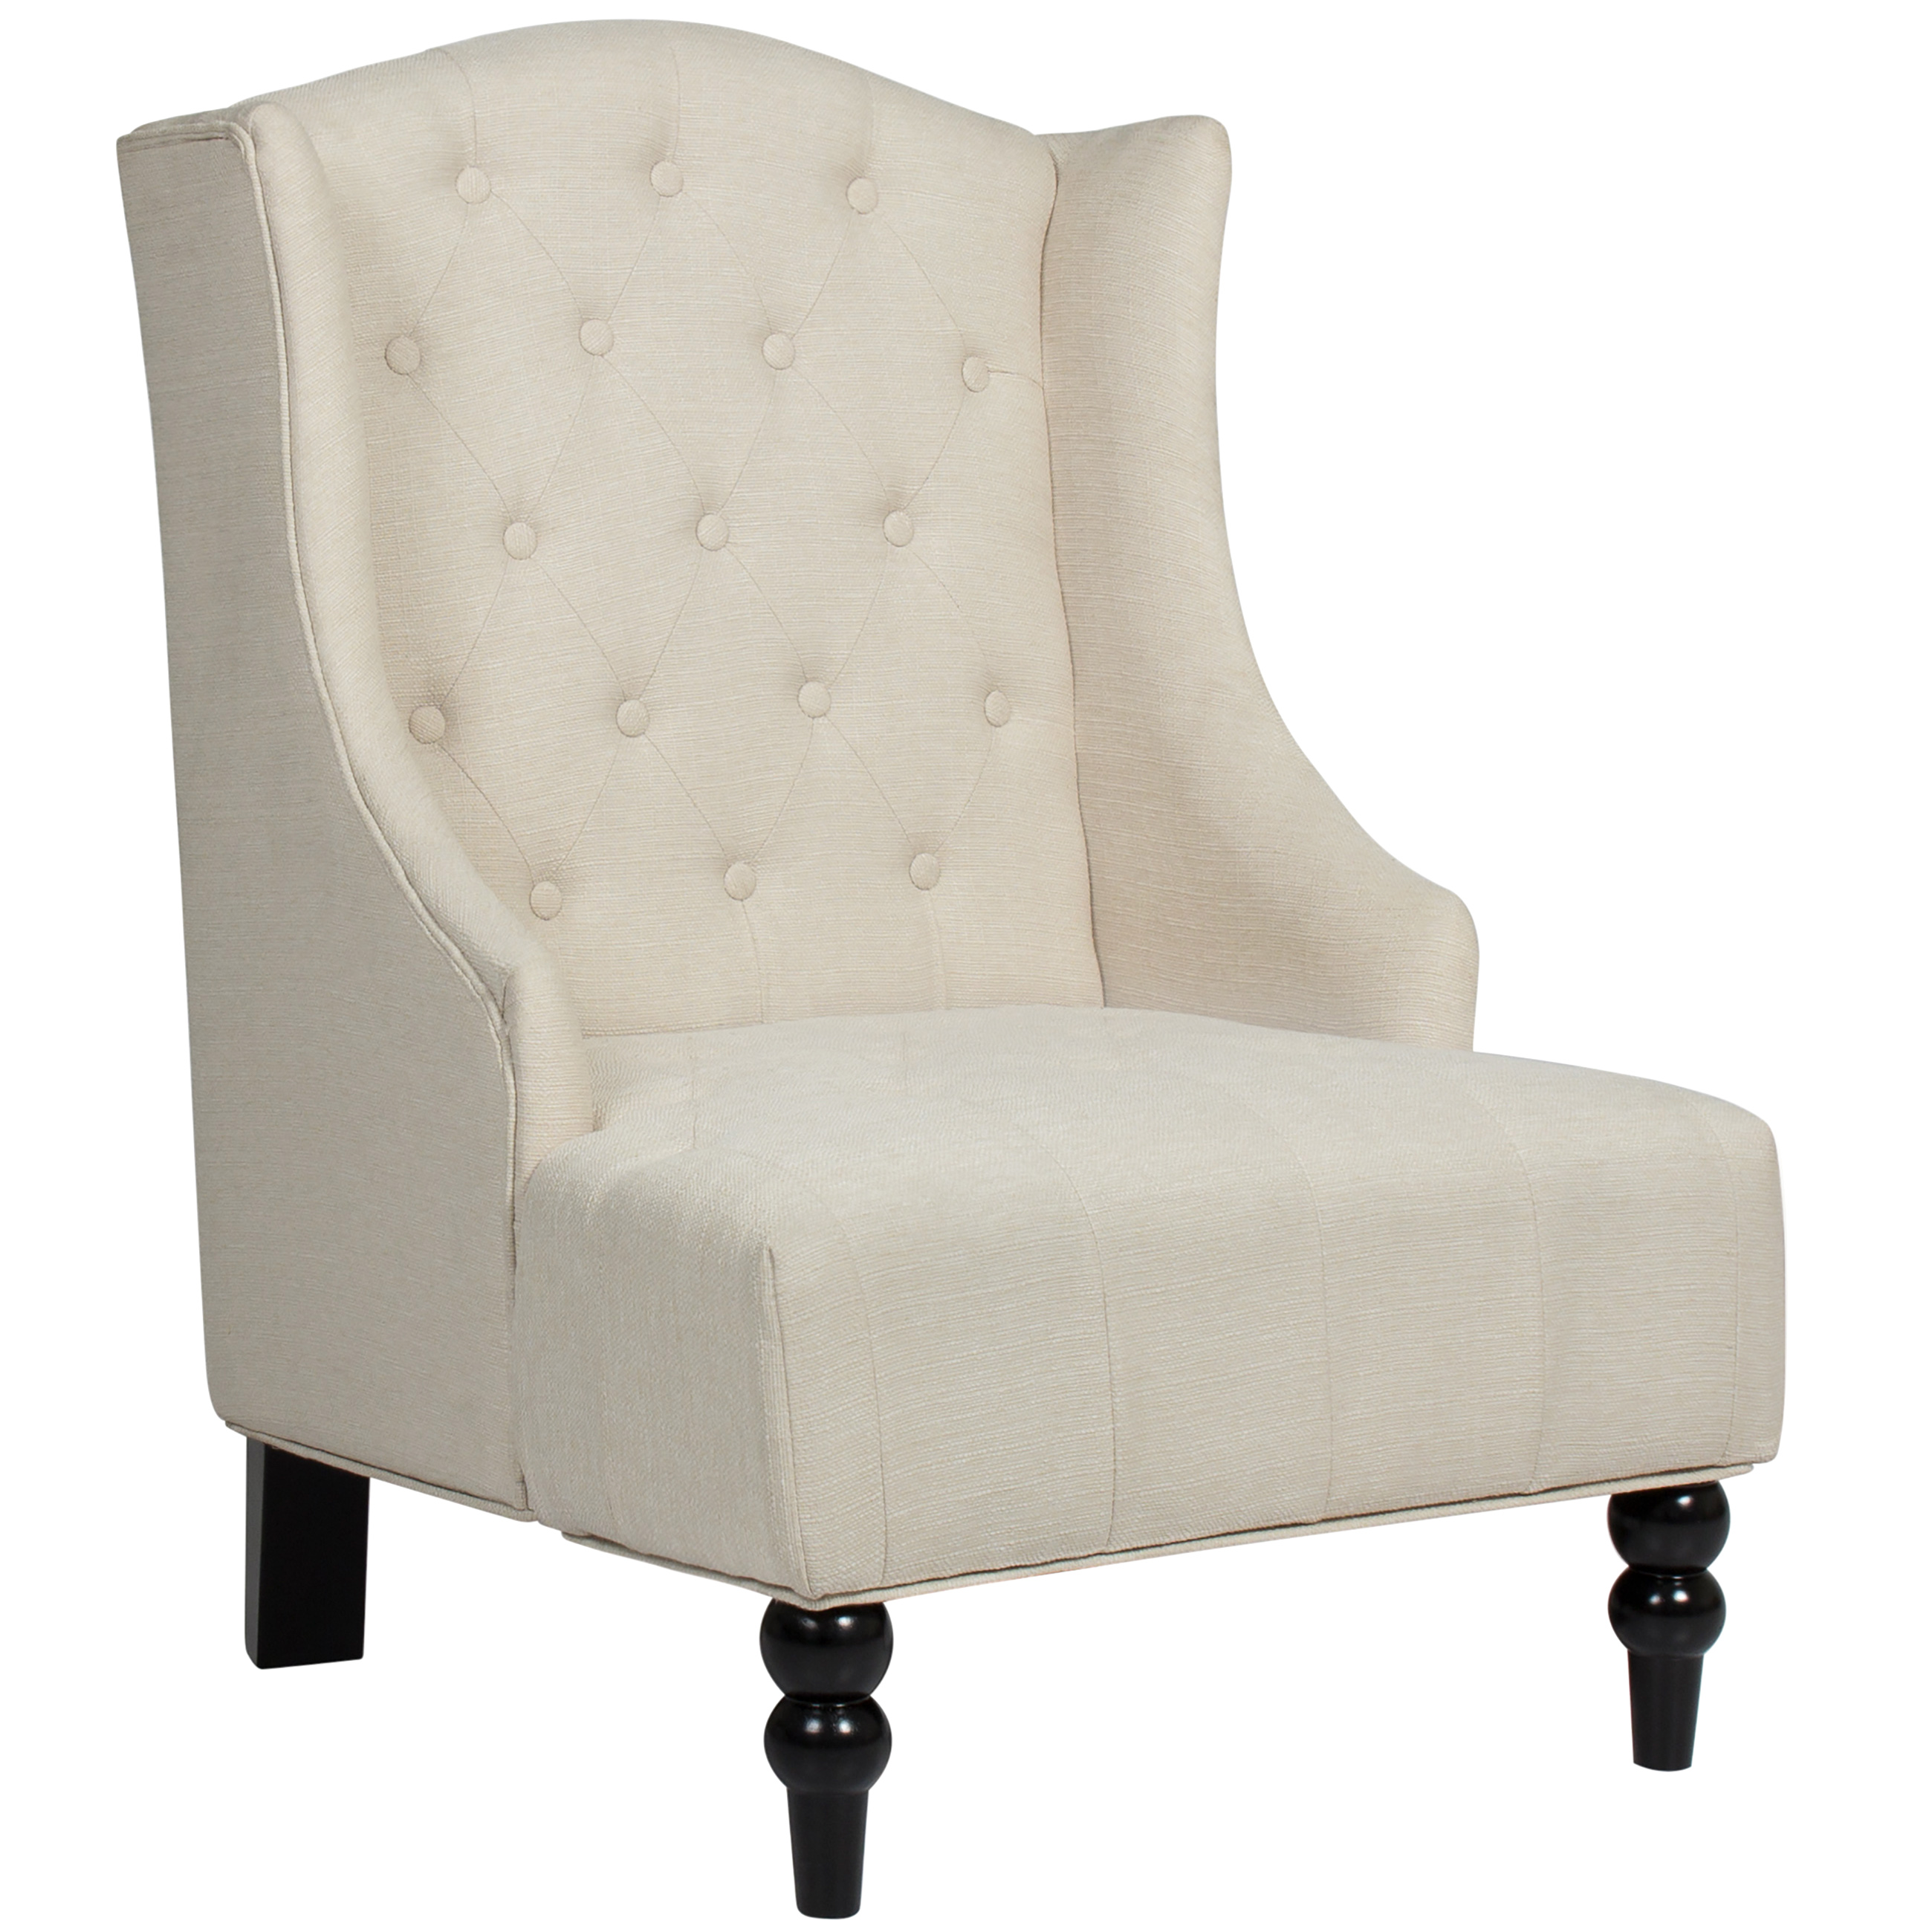 Best Choice Products Tall Wingback Tufted Fabric Accent Chair Beige by